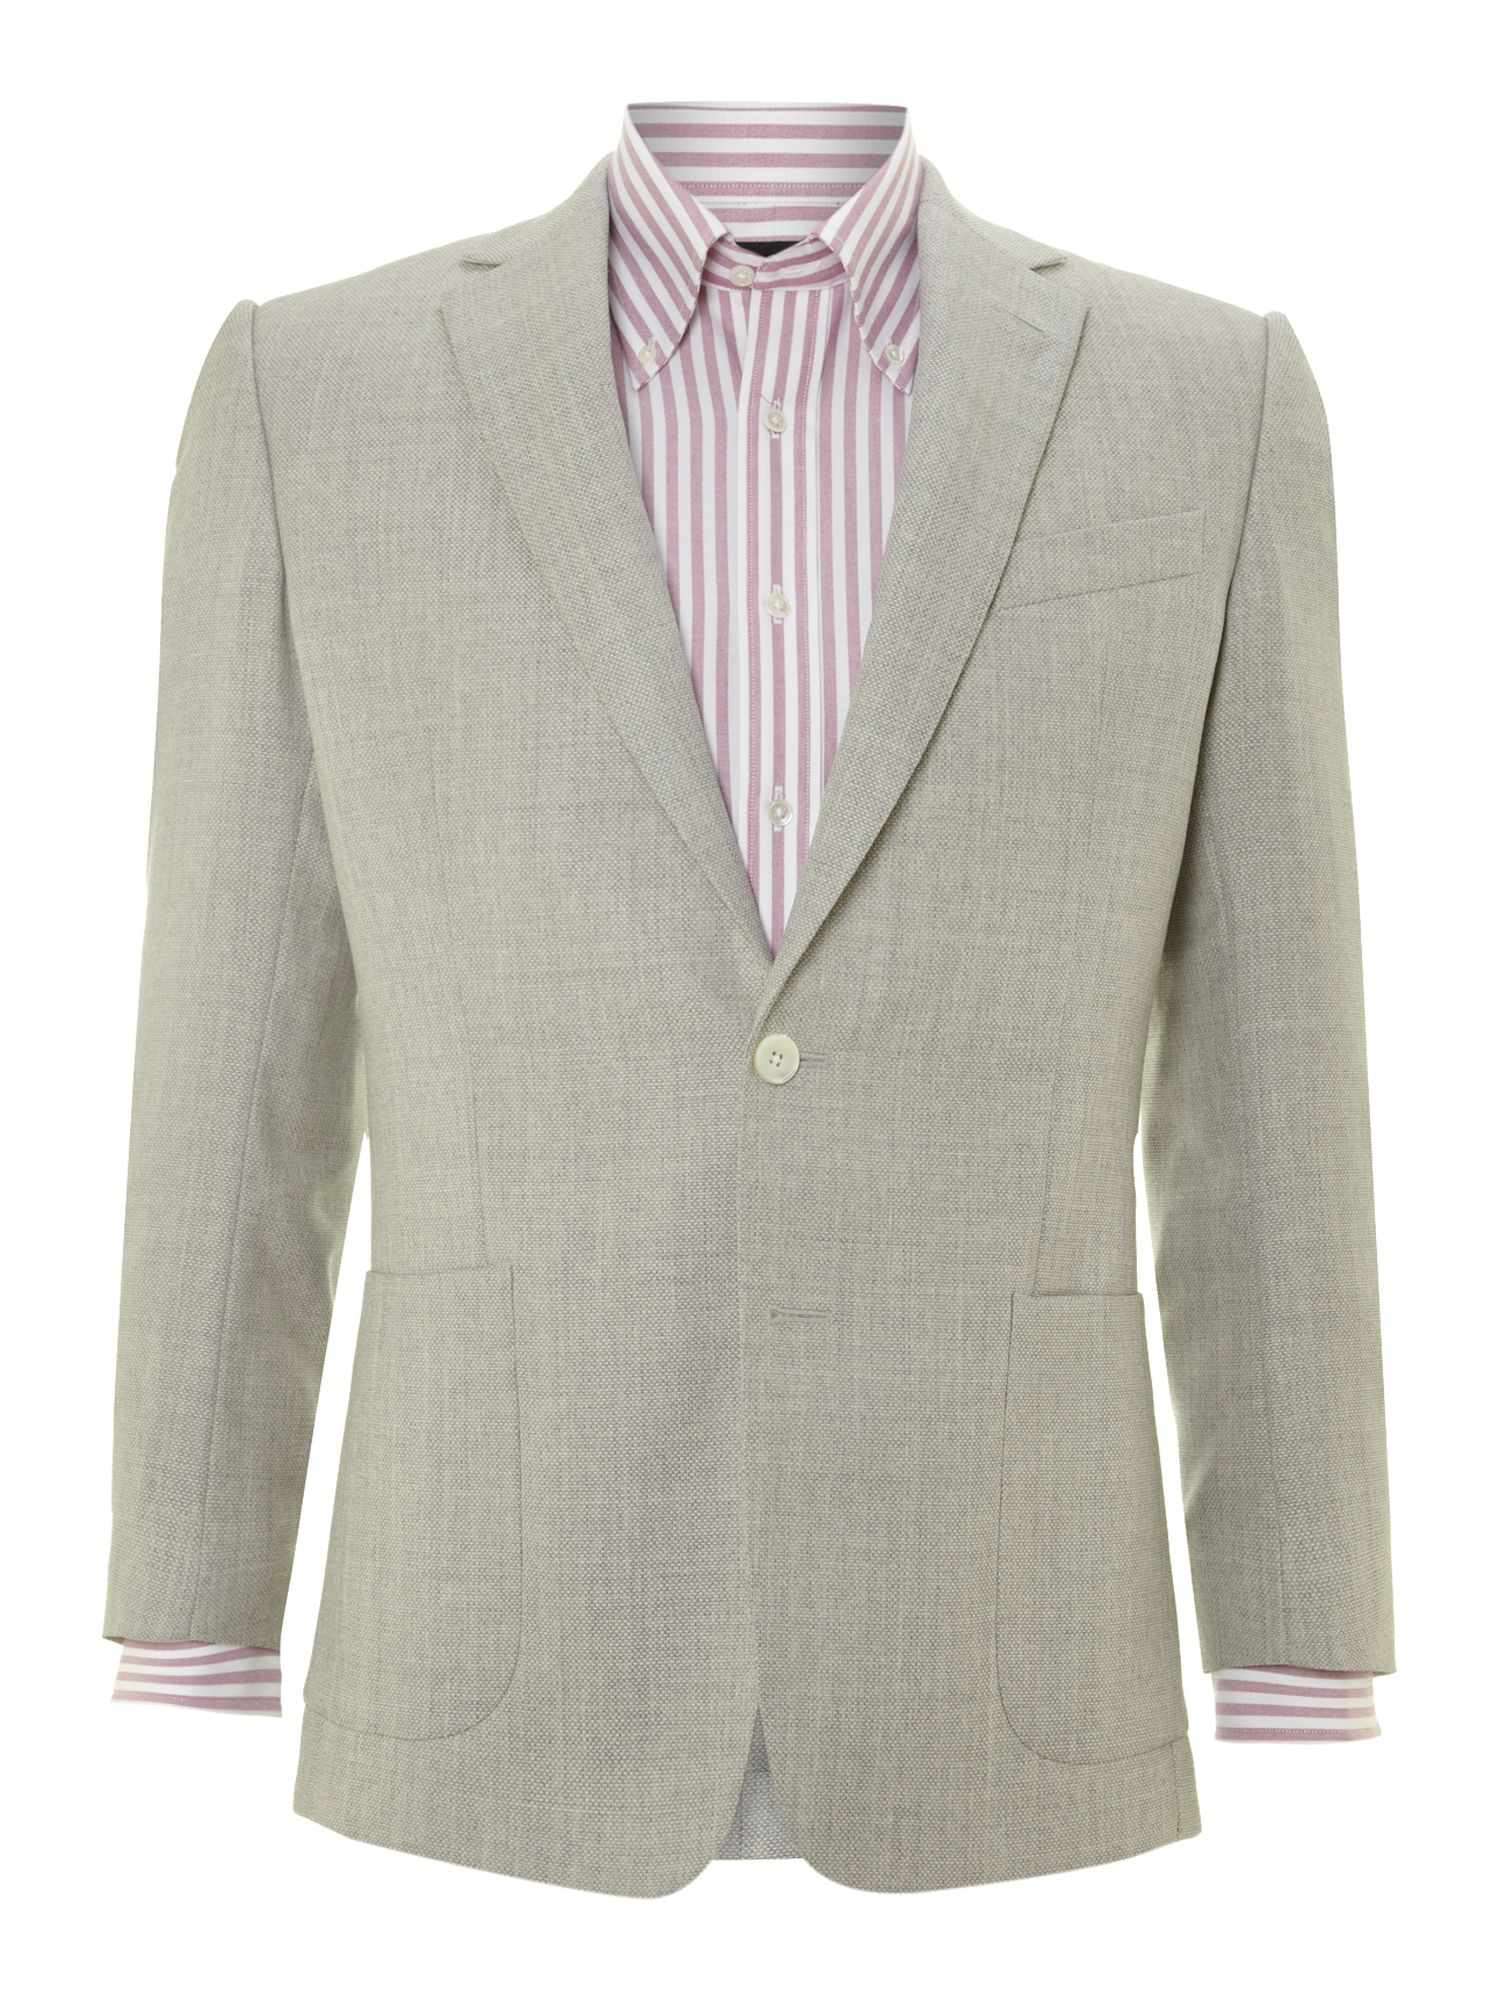 Mesh wool contemporary jacket